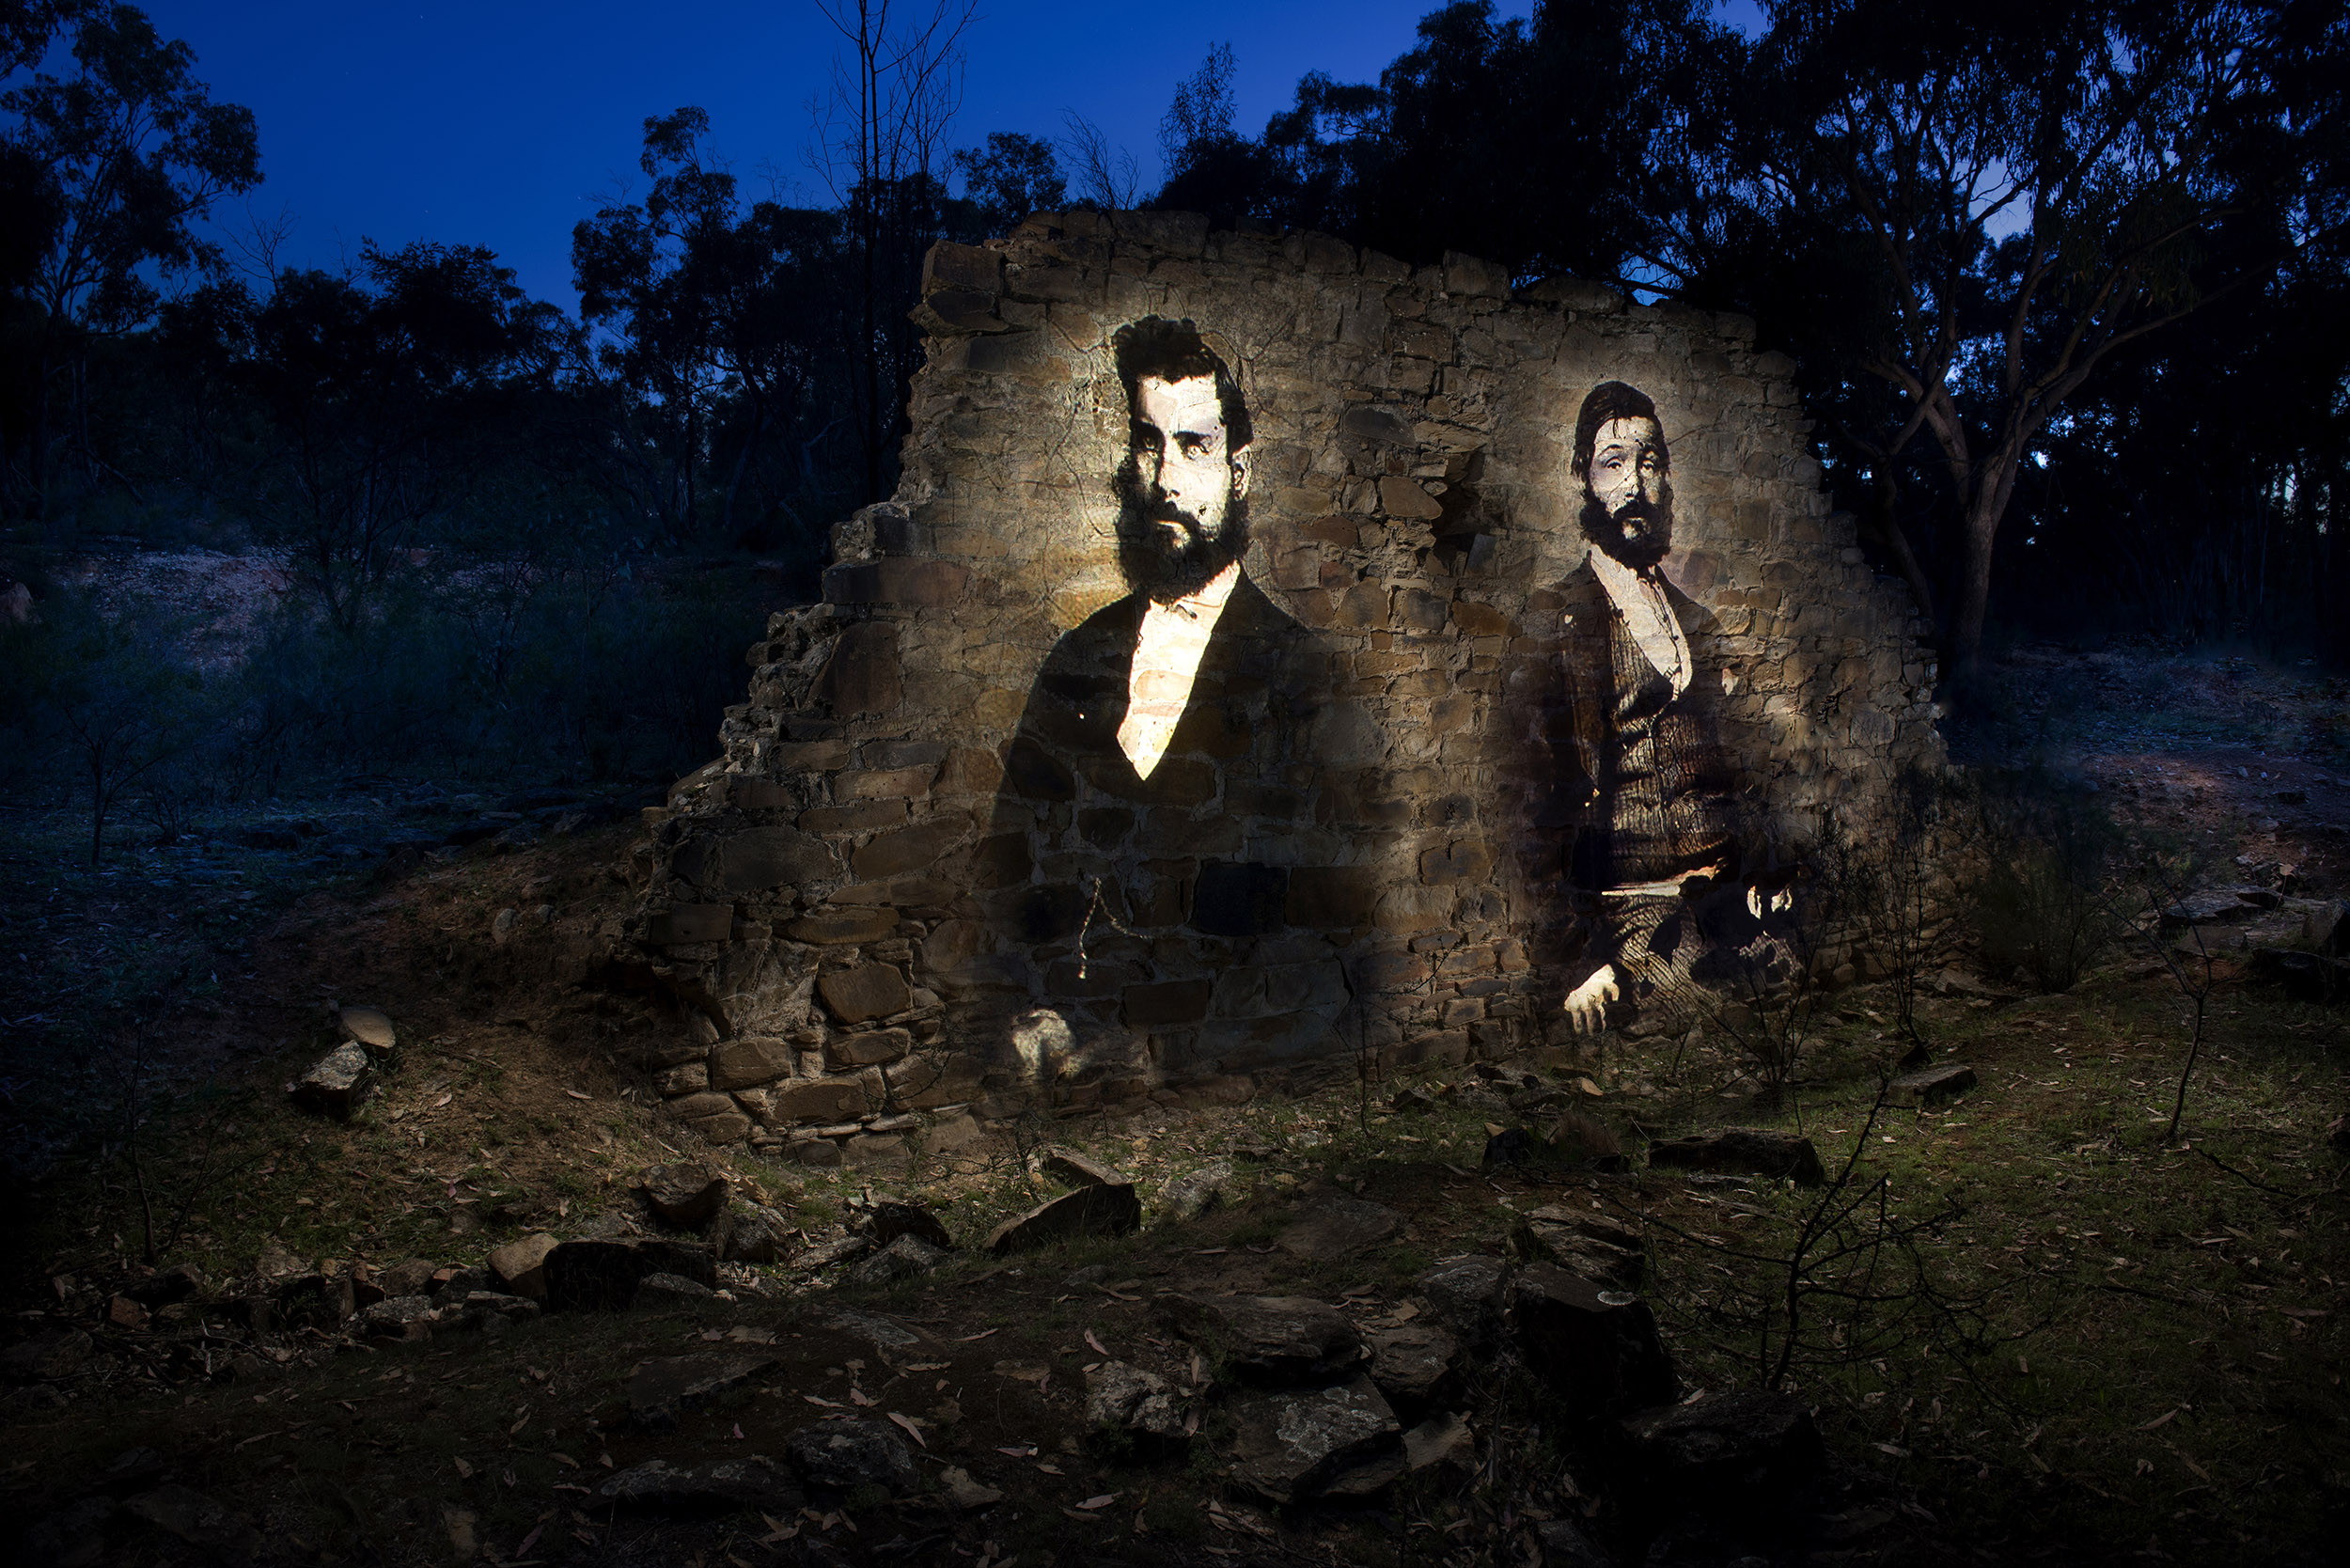 The last remaining edifice of the mighty Chappell's Gold Battery near Bald Hill. I chose these portraits of Mr Stanley Hosie (left) and Jack Plummer on a whim. Their countenance conveyed to me a sense of purpose and industry, which like this crumbling wall has now faded in the passage of time.